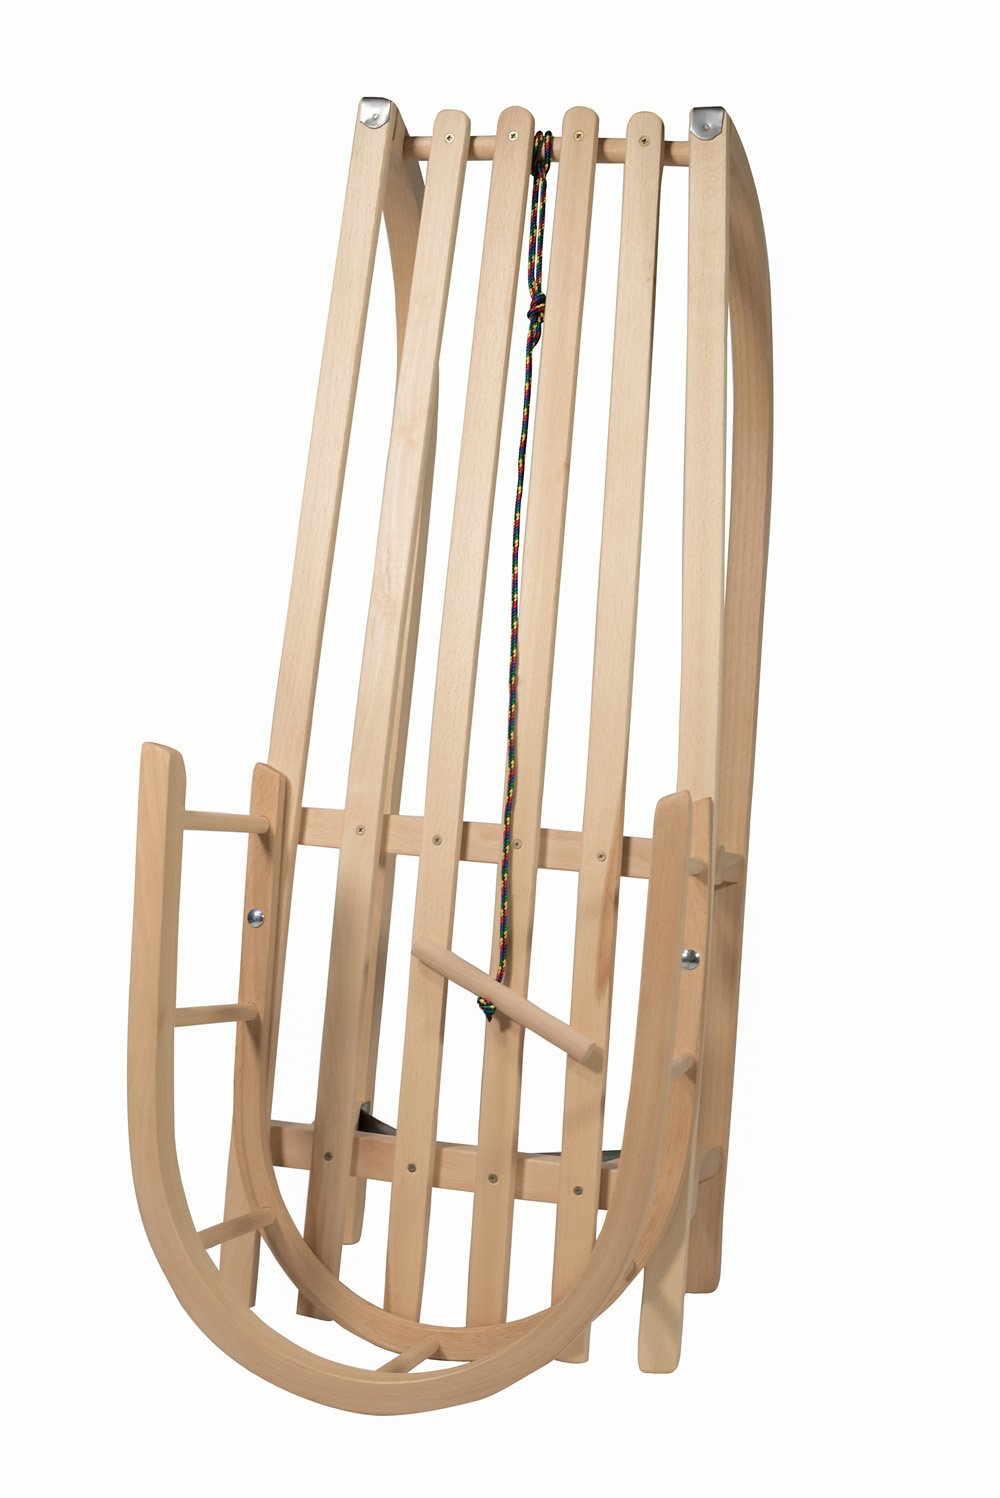 domitp Wooden Sled with Back Support – Sanki Drewniane